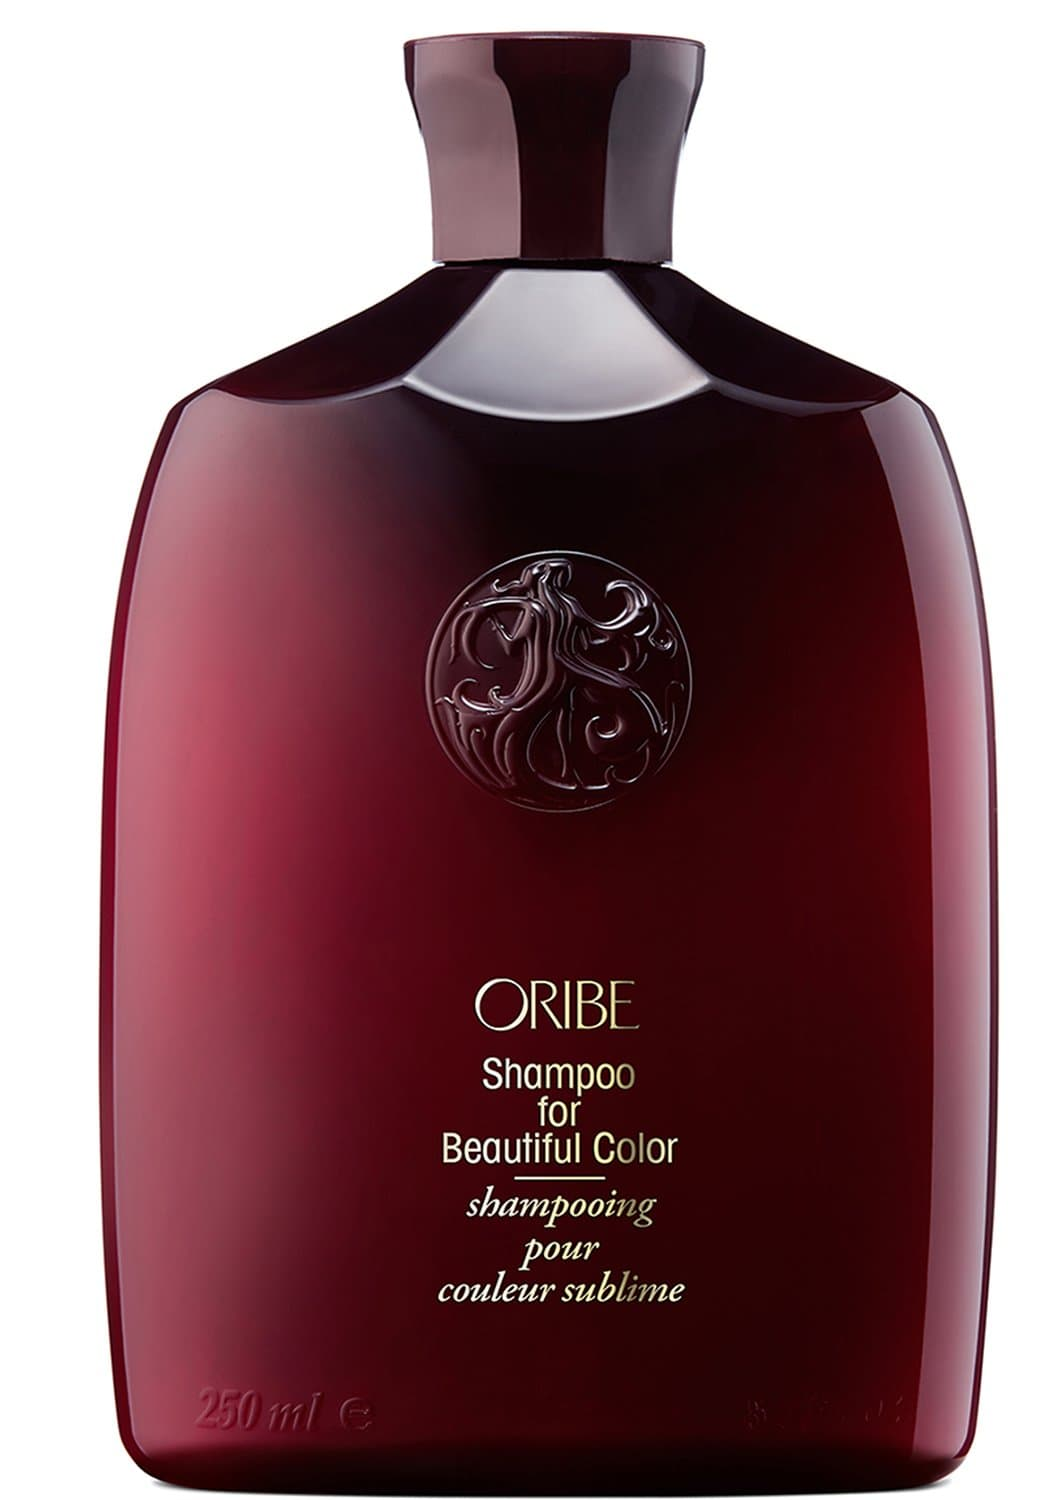 Shampoo for Beautiful Colour 250ml | Oribe